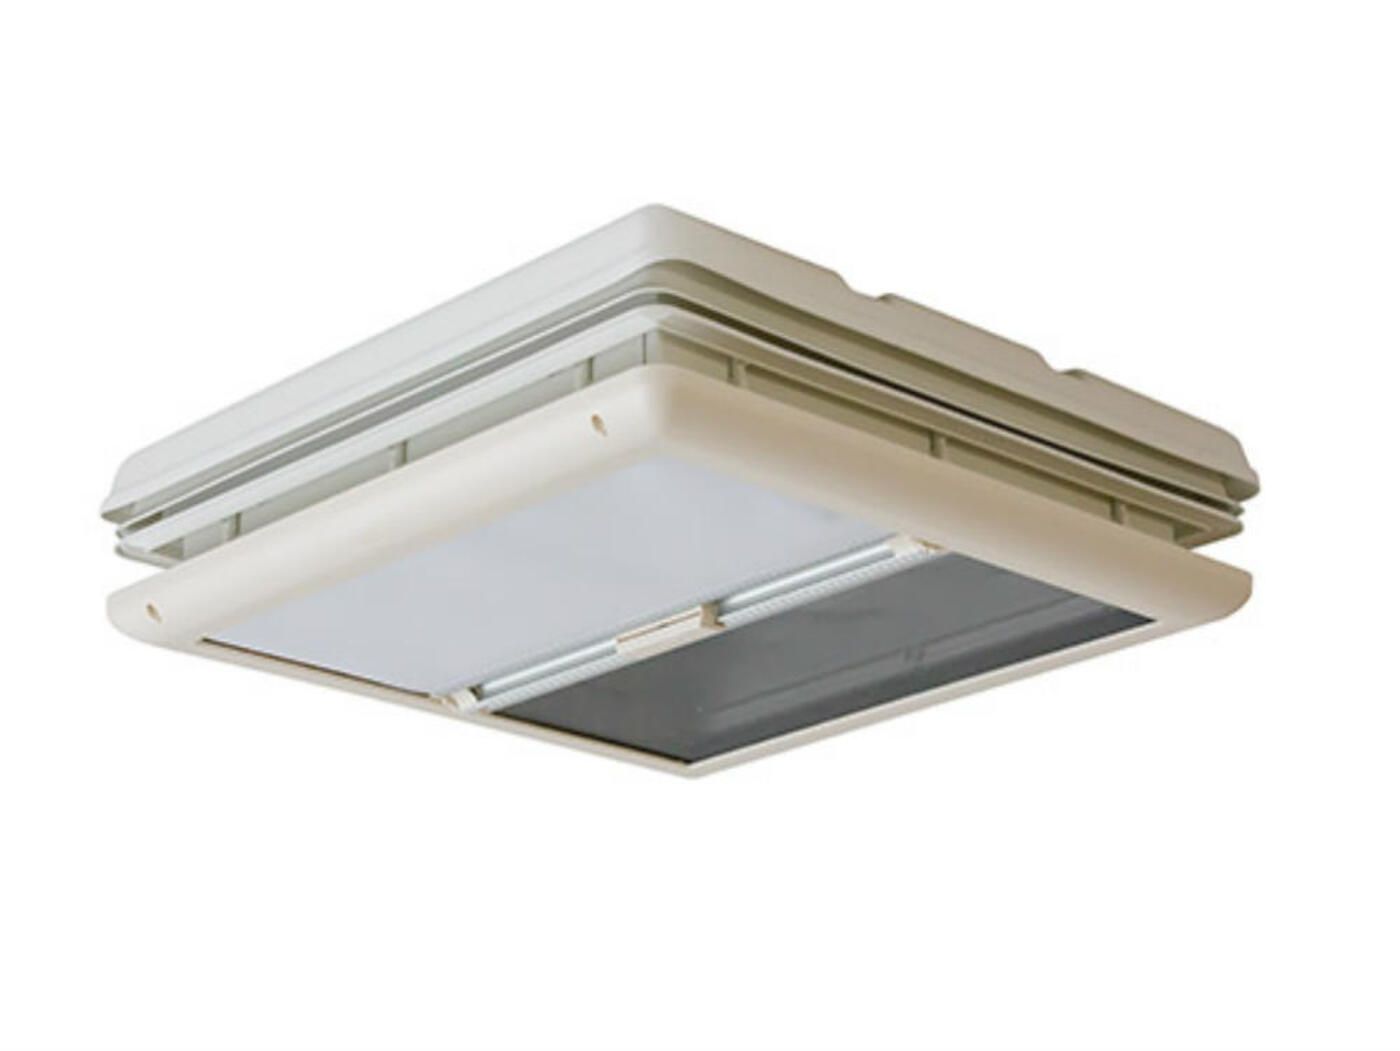 Fiamma 50 x 50 Vent White with Blind - Homestead Caravans